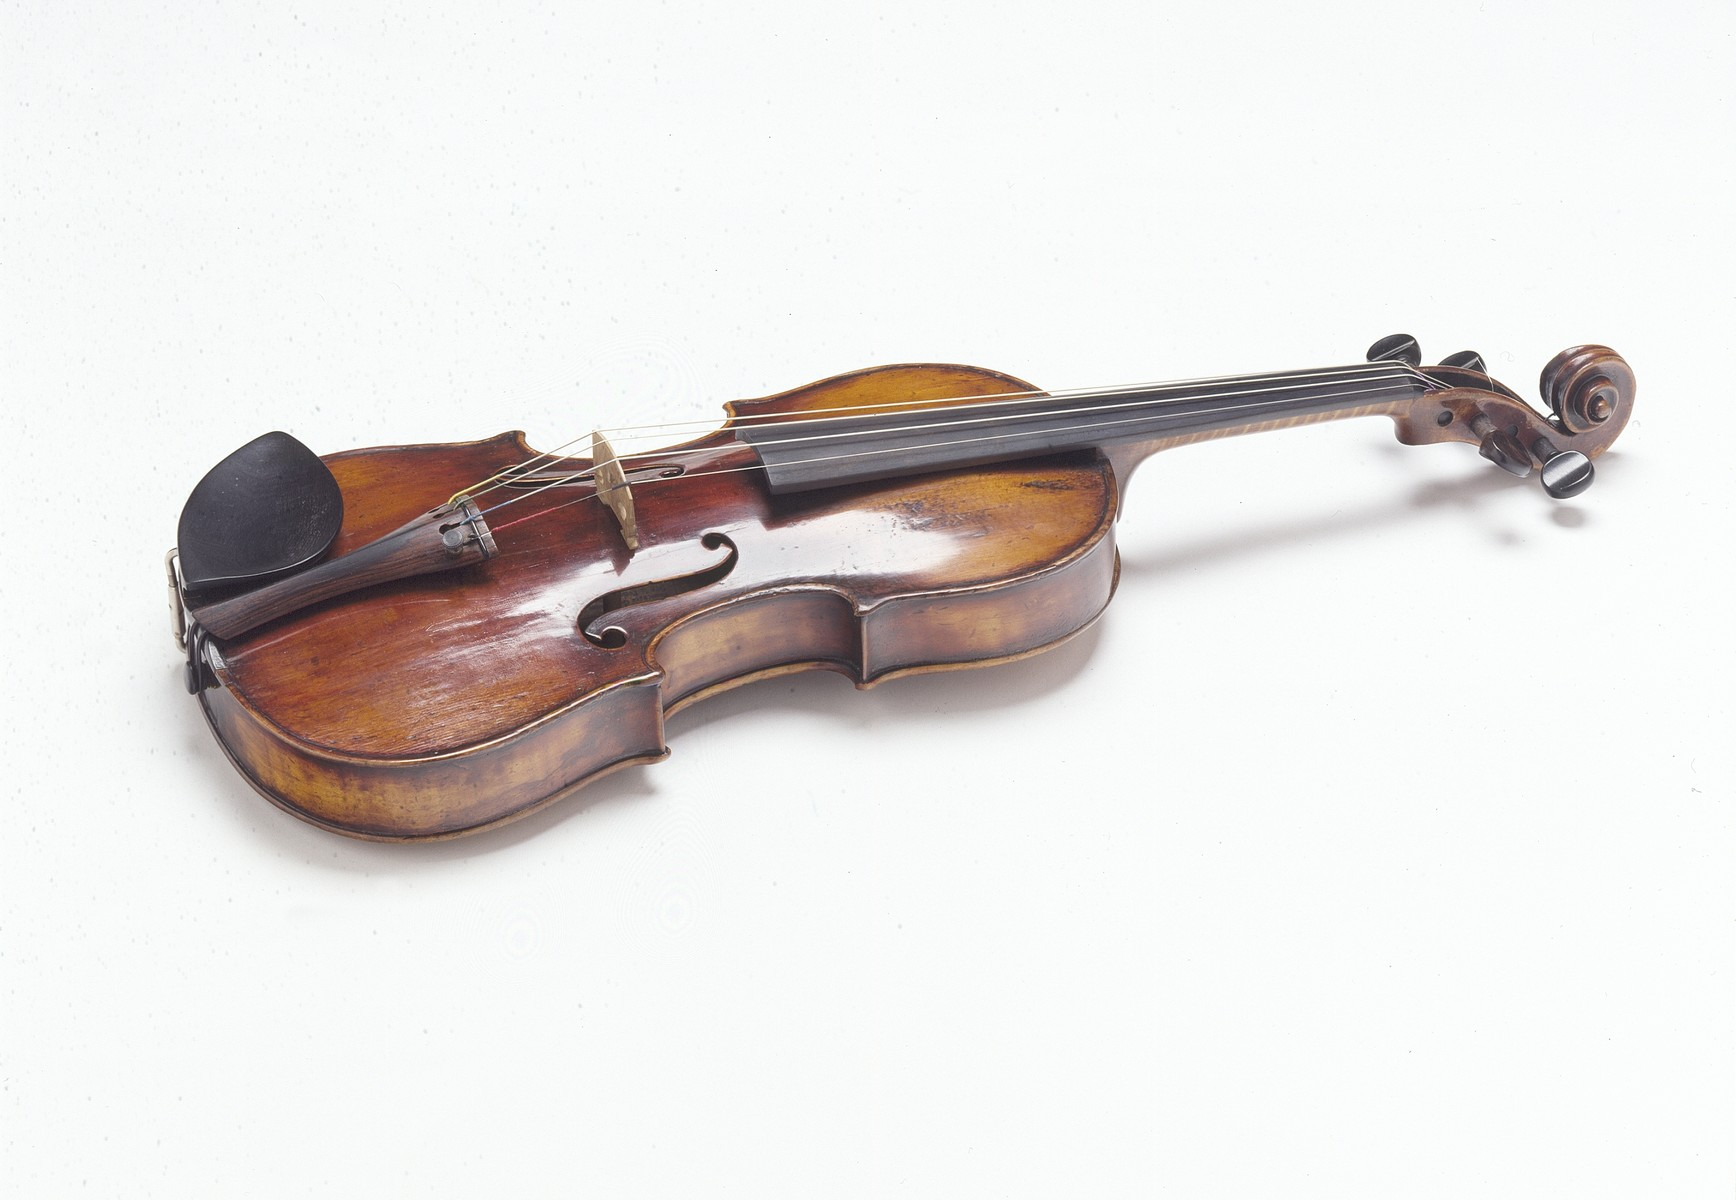 A 19th-century Italian violin owned by Henry Rosner, a professional Jewish violinist from Krakow who was saved by Oskar Schindler during World War II.